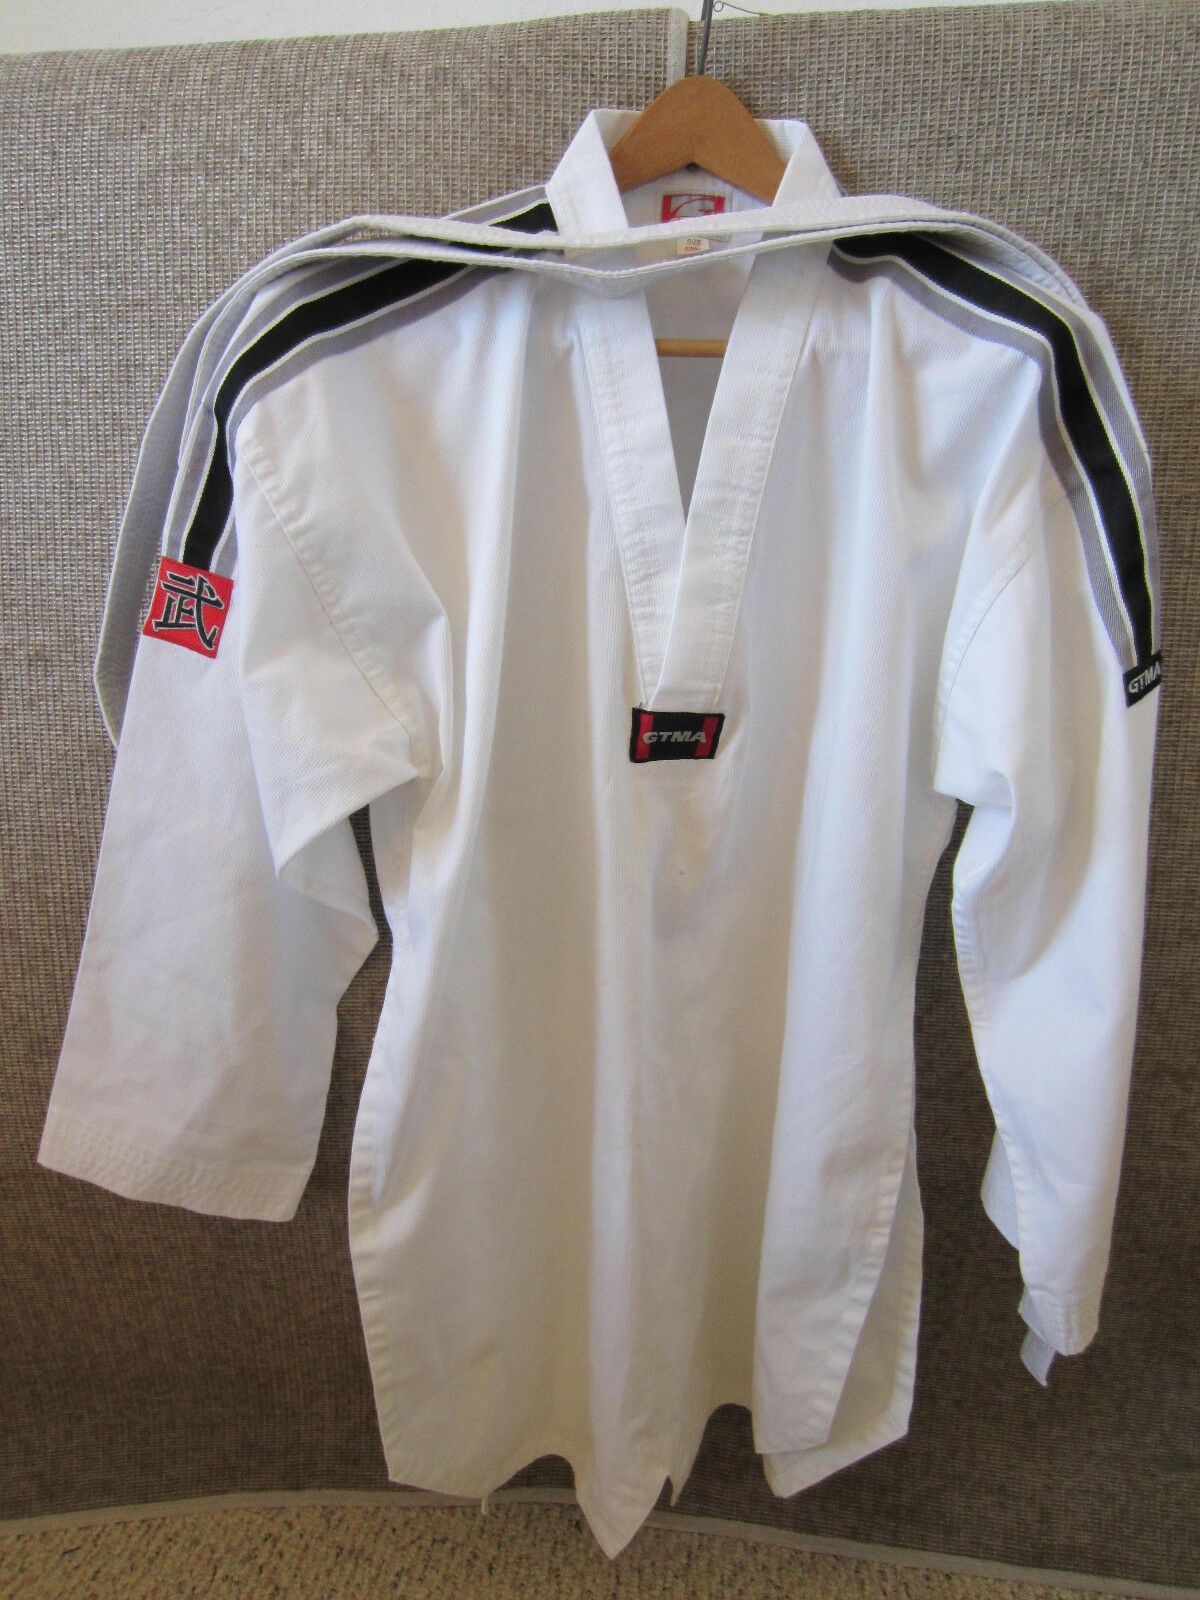 MARTIAL ARTS, KARATE, WHITE COAT, PANTS & BELT OUTFIT